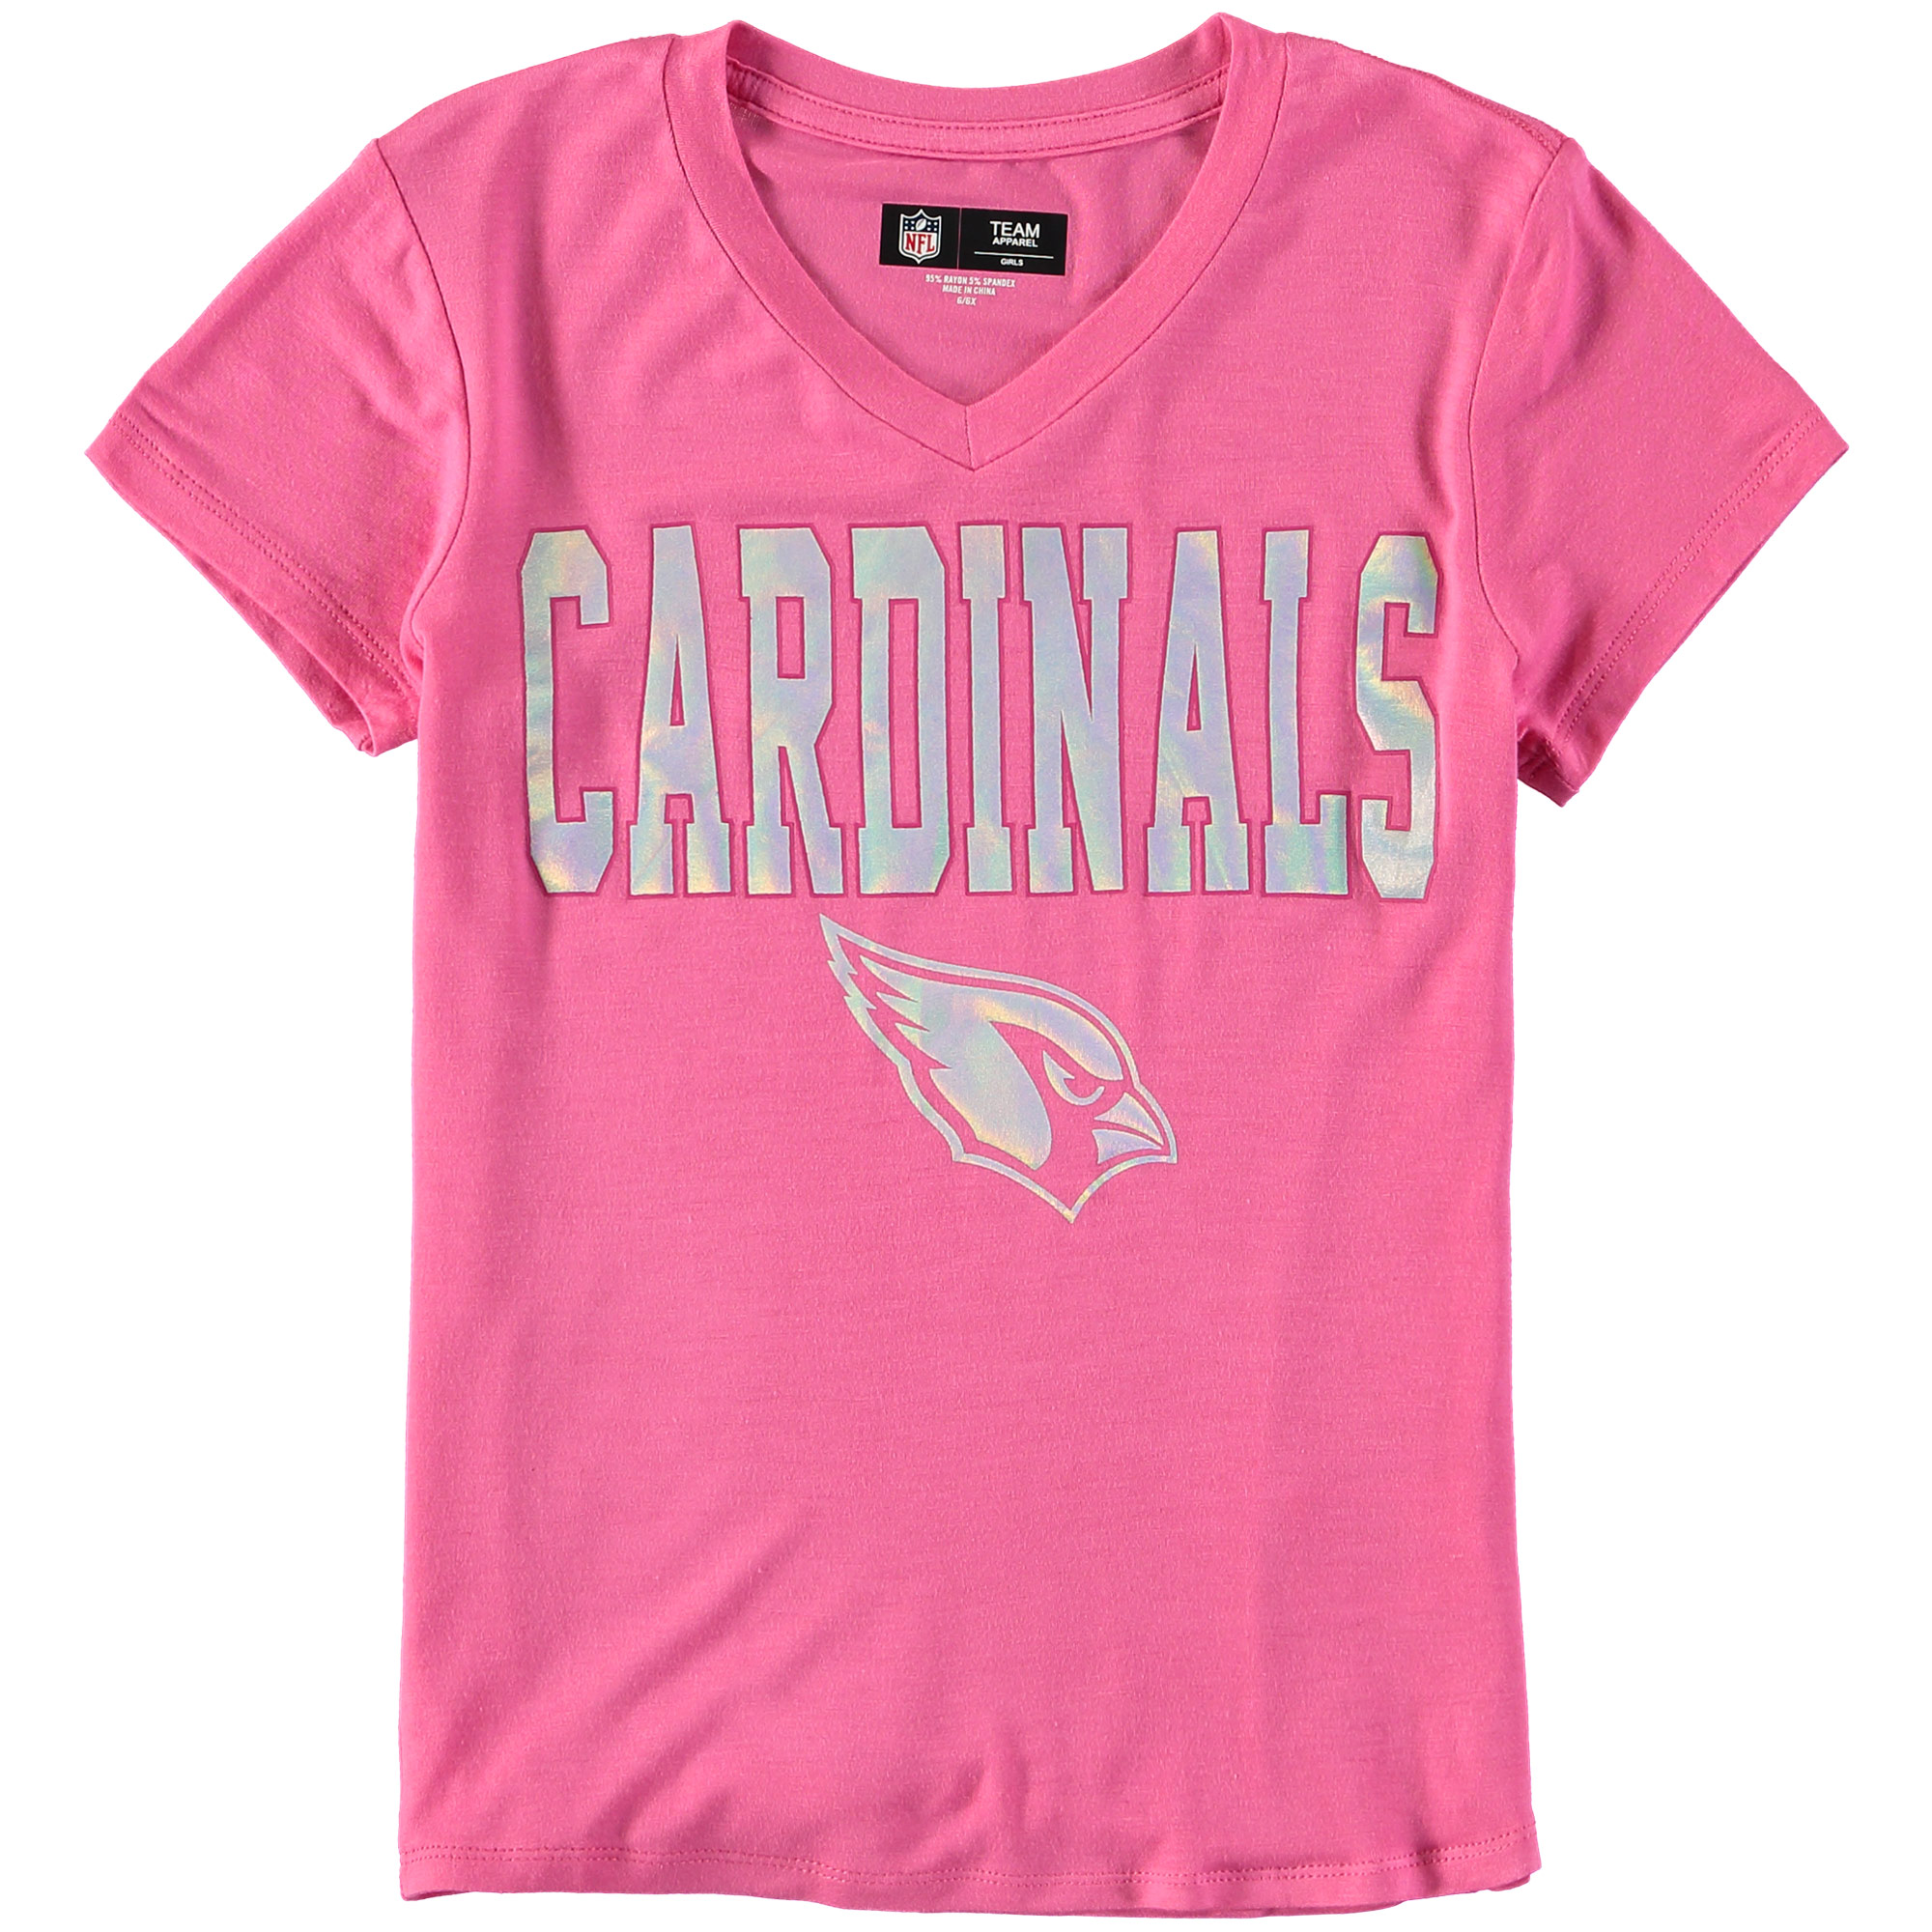 Arizona Cardinals 5th & Ocean by New Era Youth Girls V-Neck T-Shirt - Pink